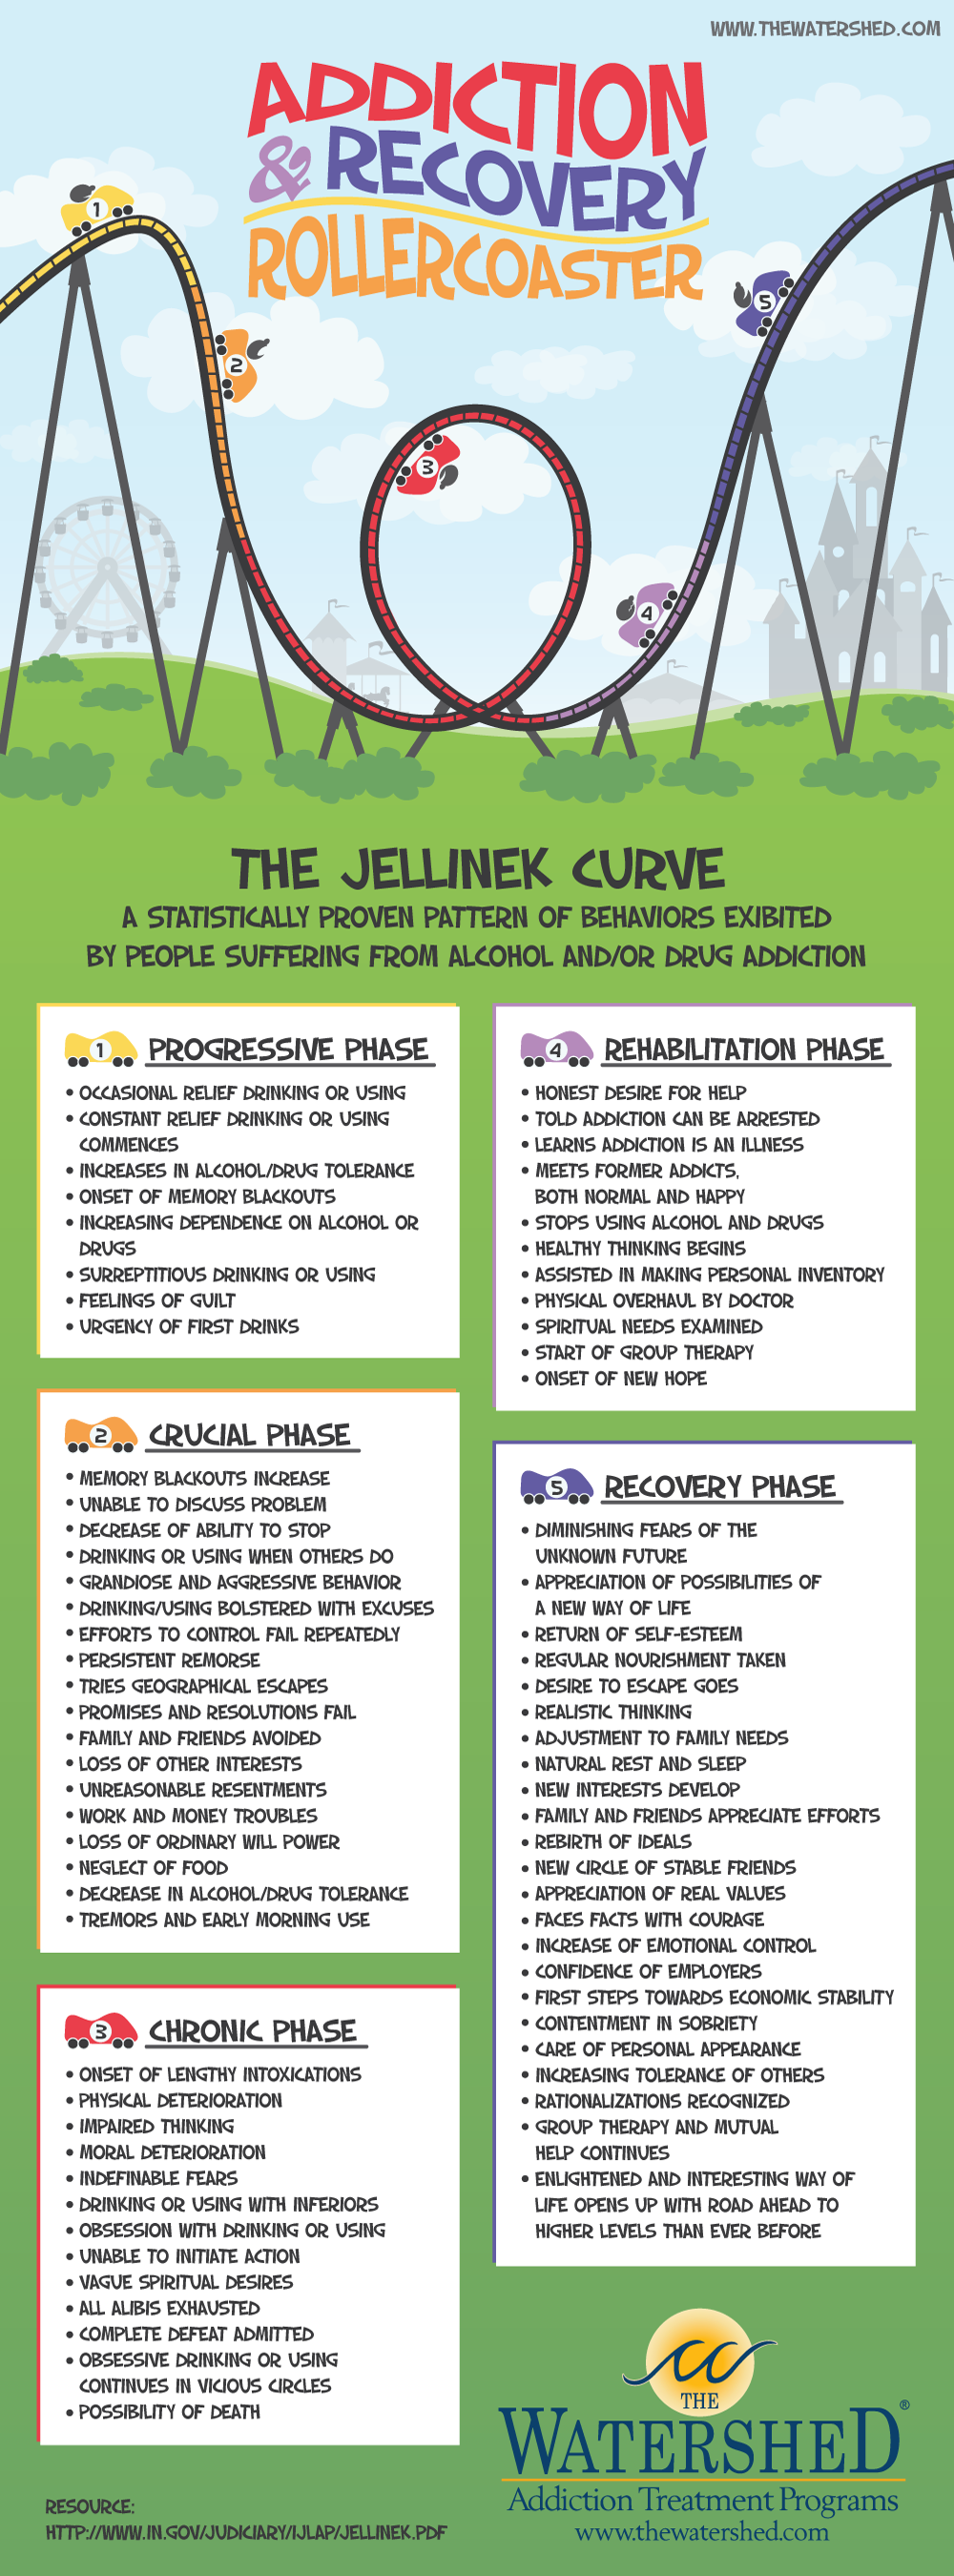 jellinek curve infographic addiction to recovery if you need addiction recovery treatment. Black Bedroom Furniture Sets. Home Design Ideas